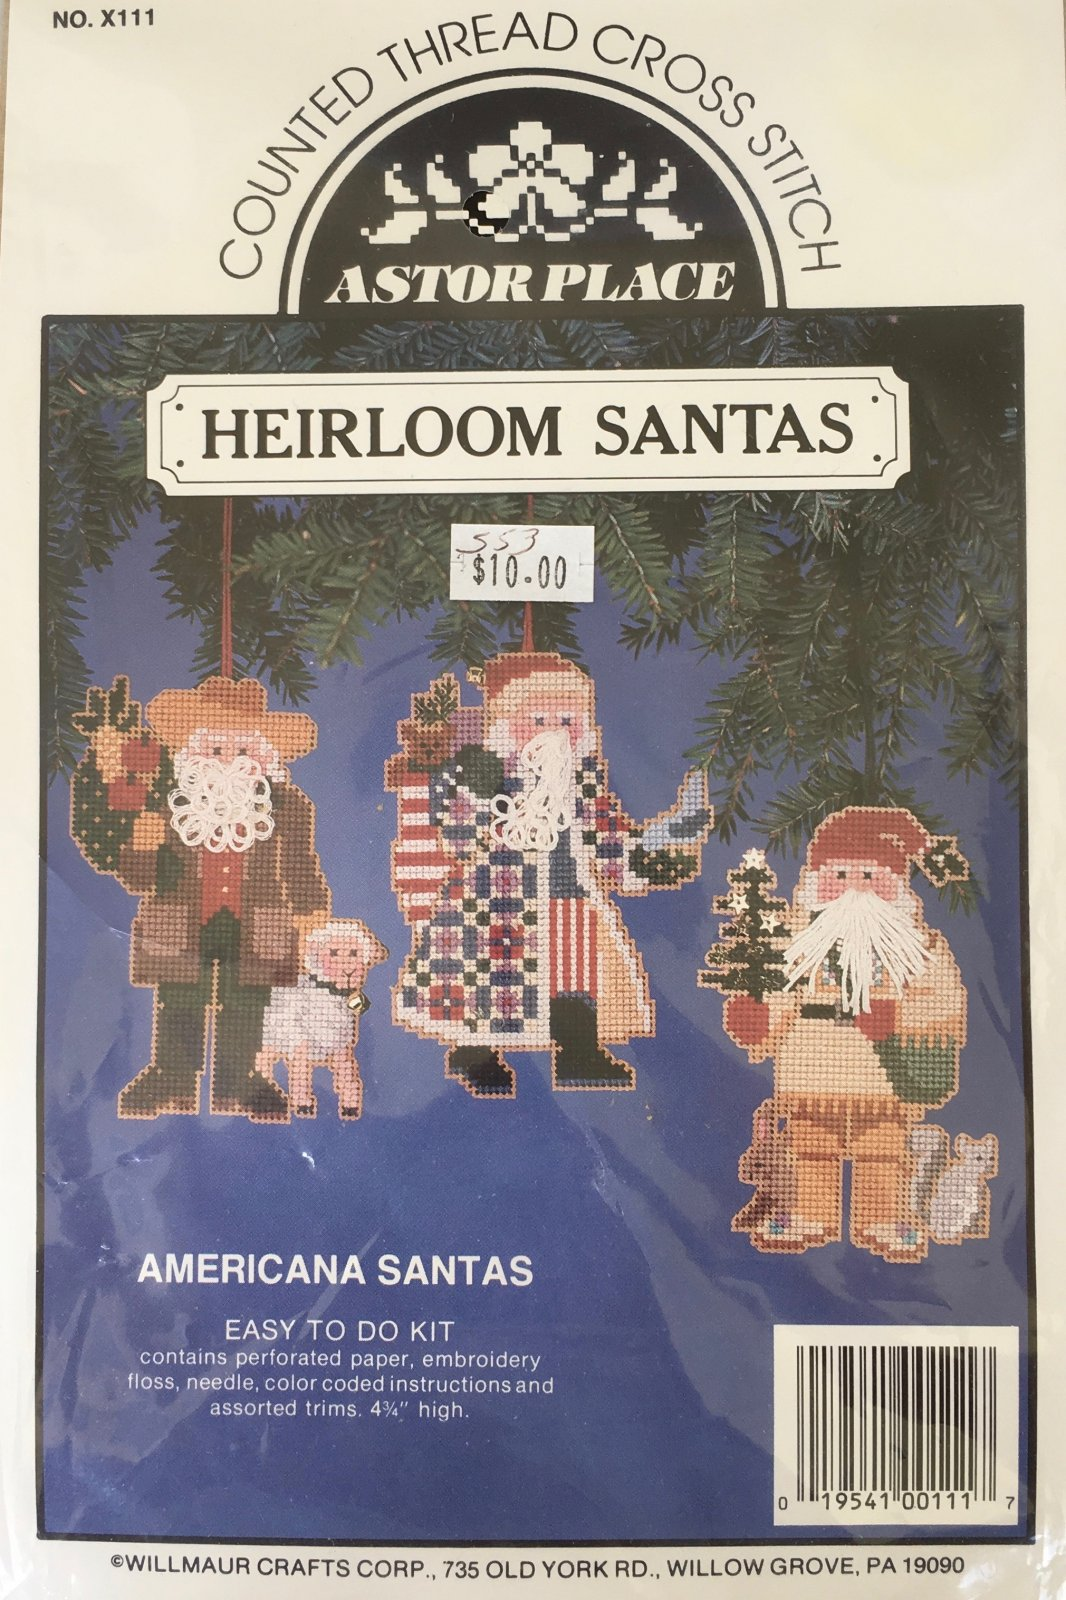 Astor Place: Americana Santas Kit X111